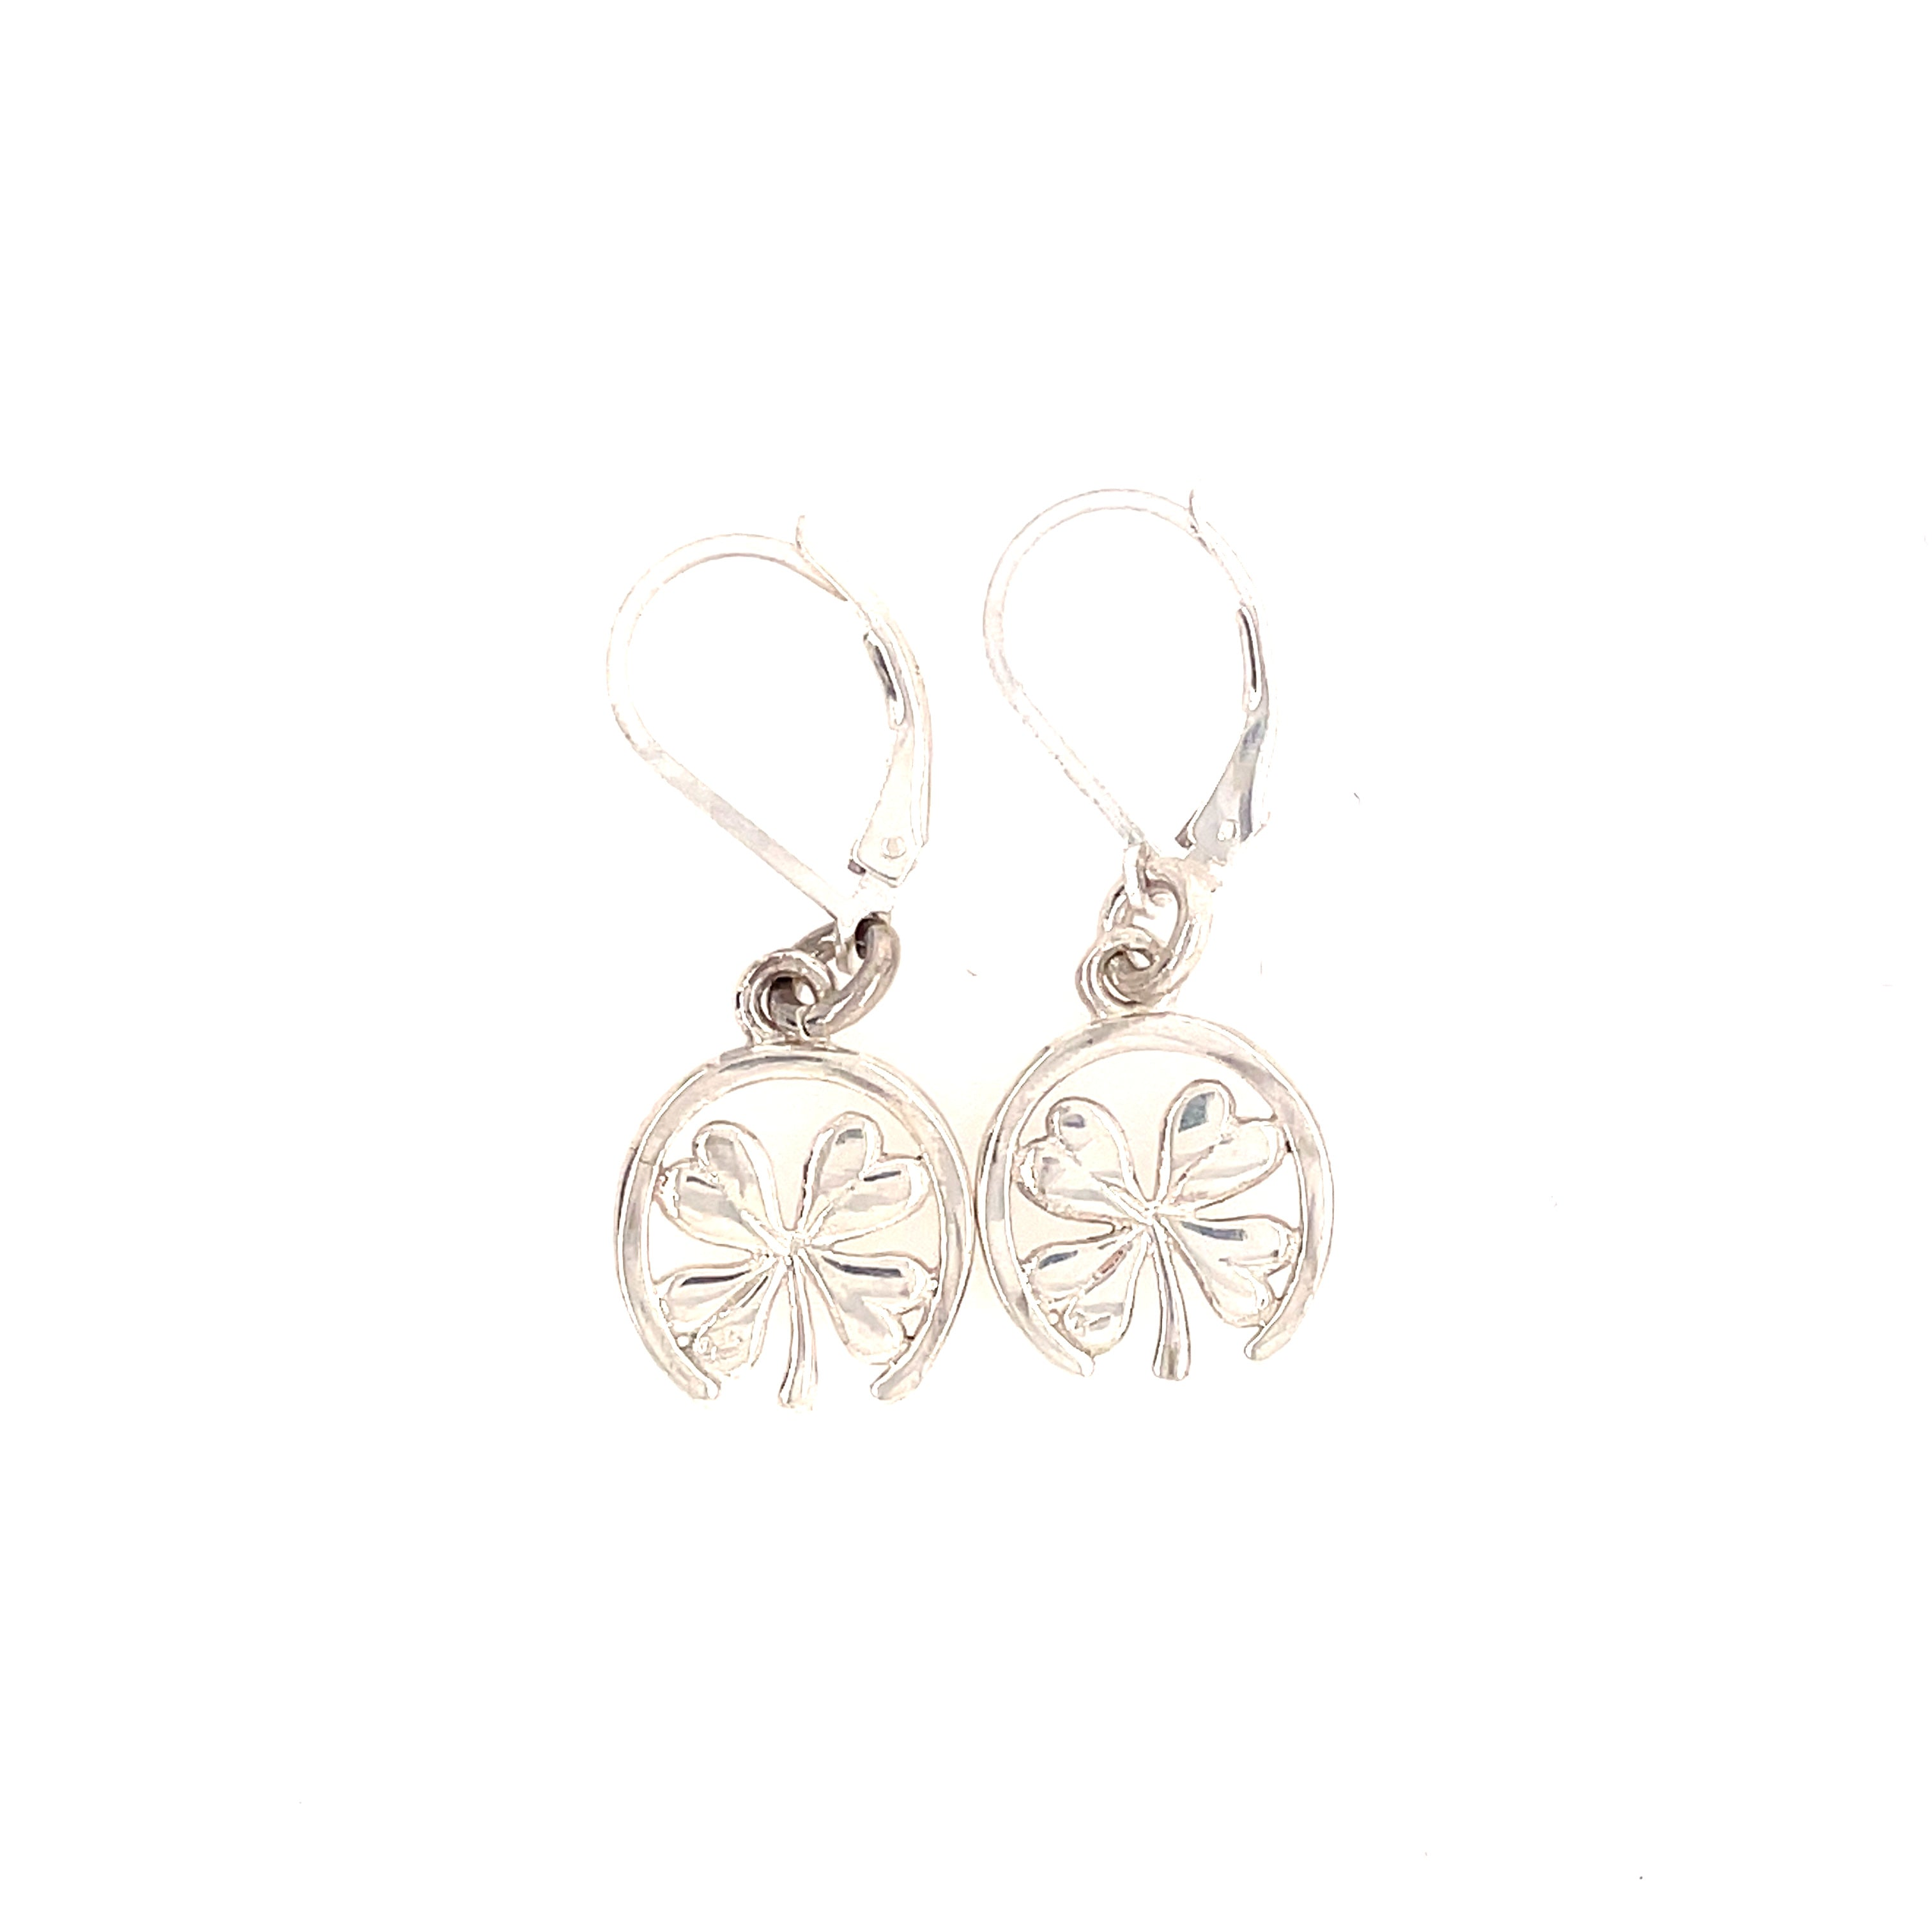 Equestrian clover and horseshoe earrings